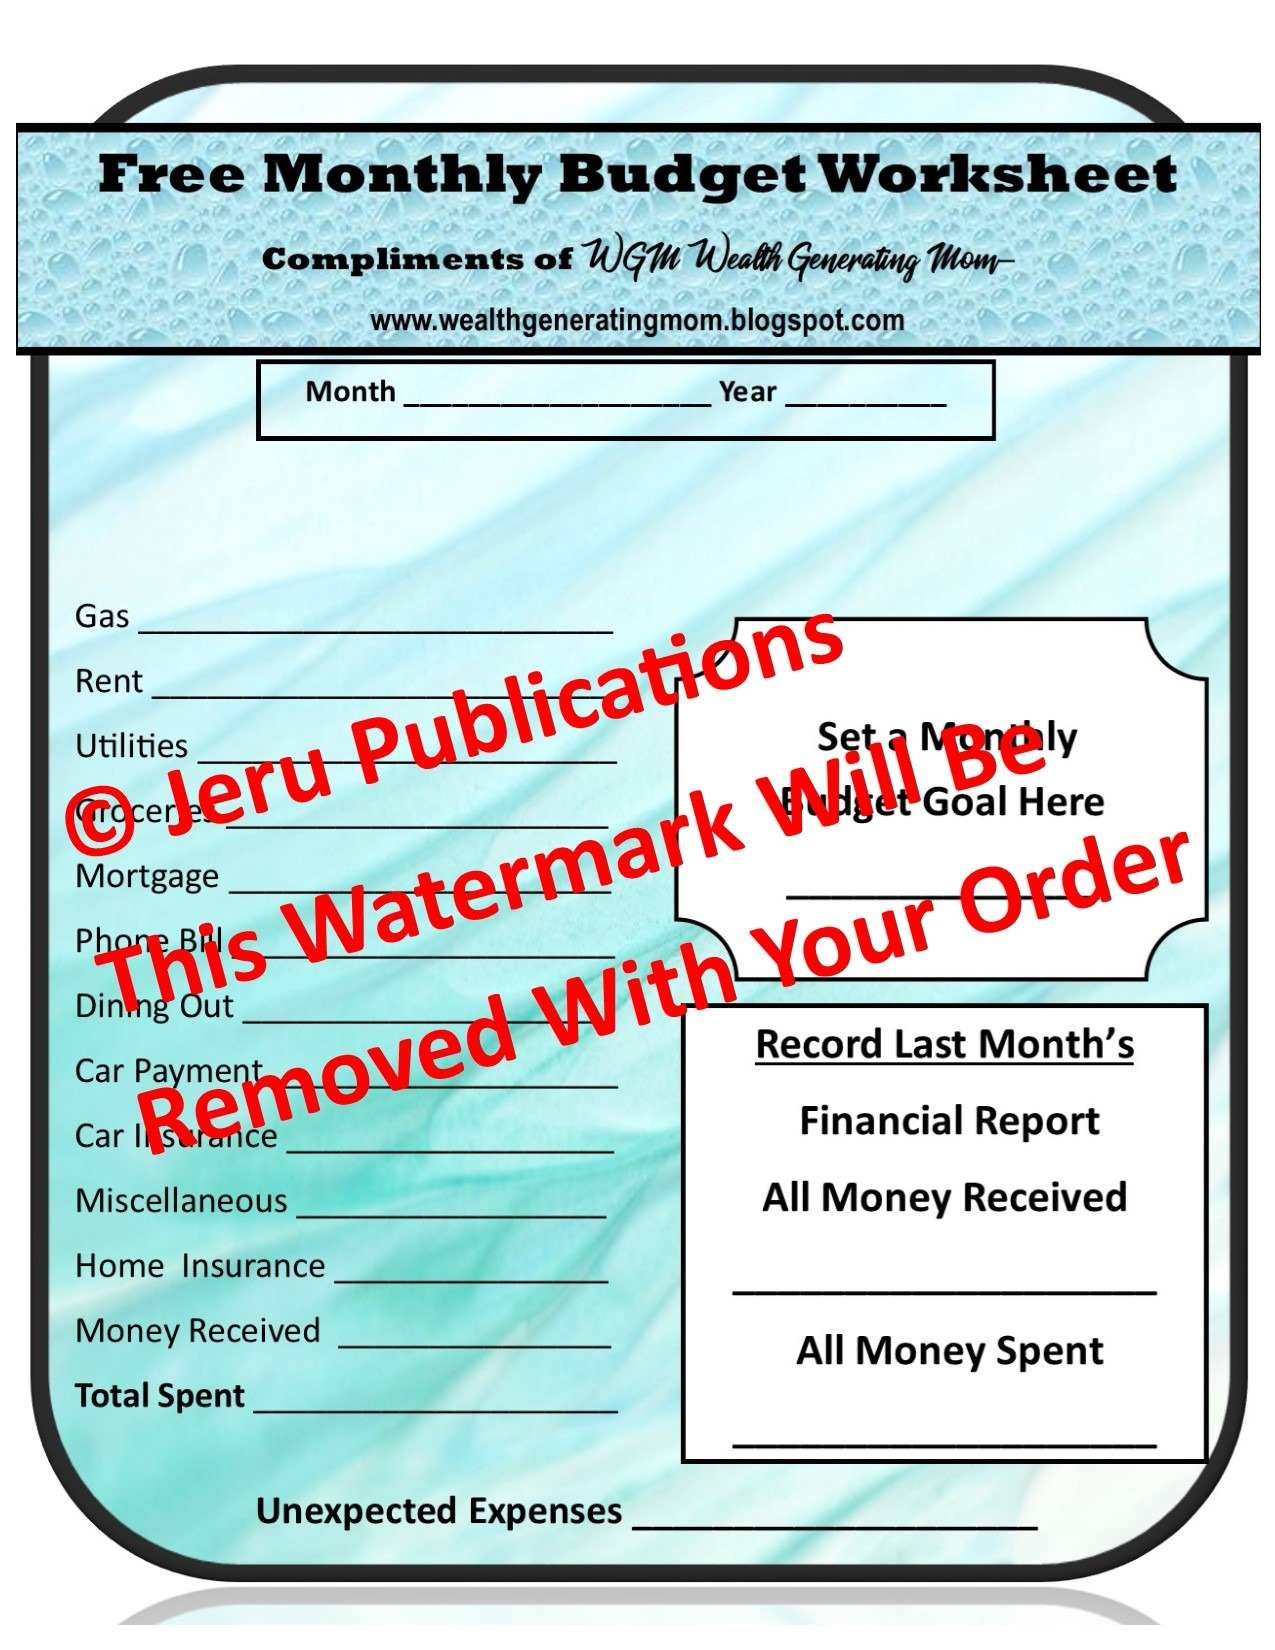 Free Monthly Budget Worksheet Compliments of Wealth Generating Mom